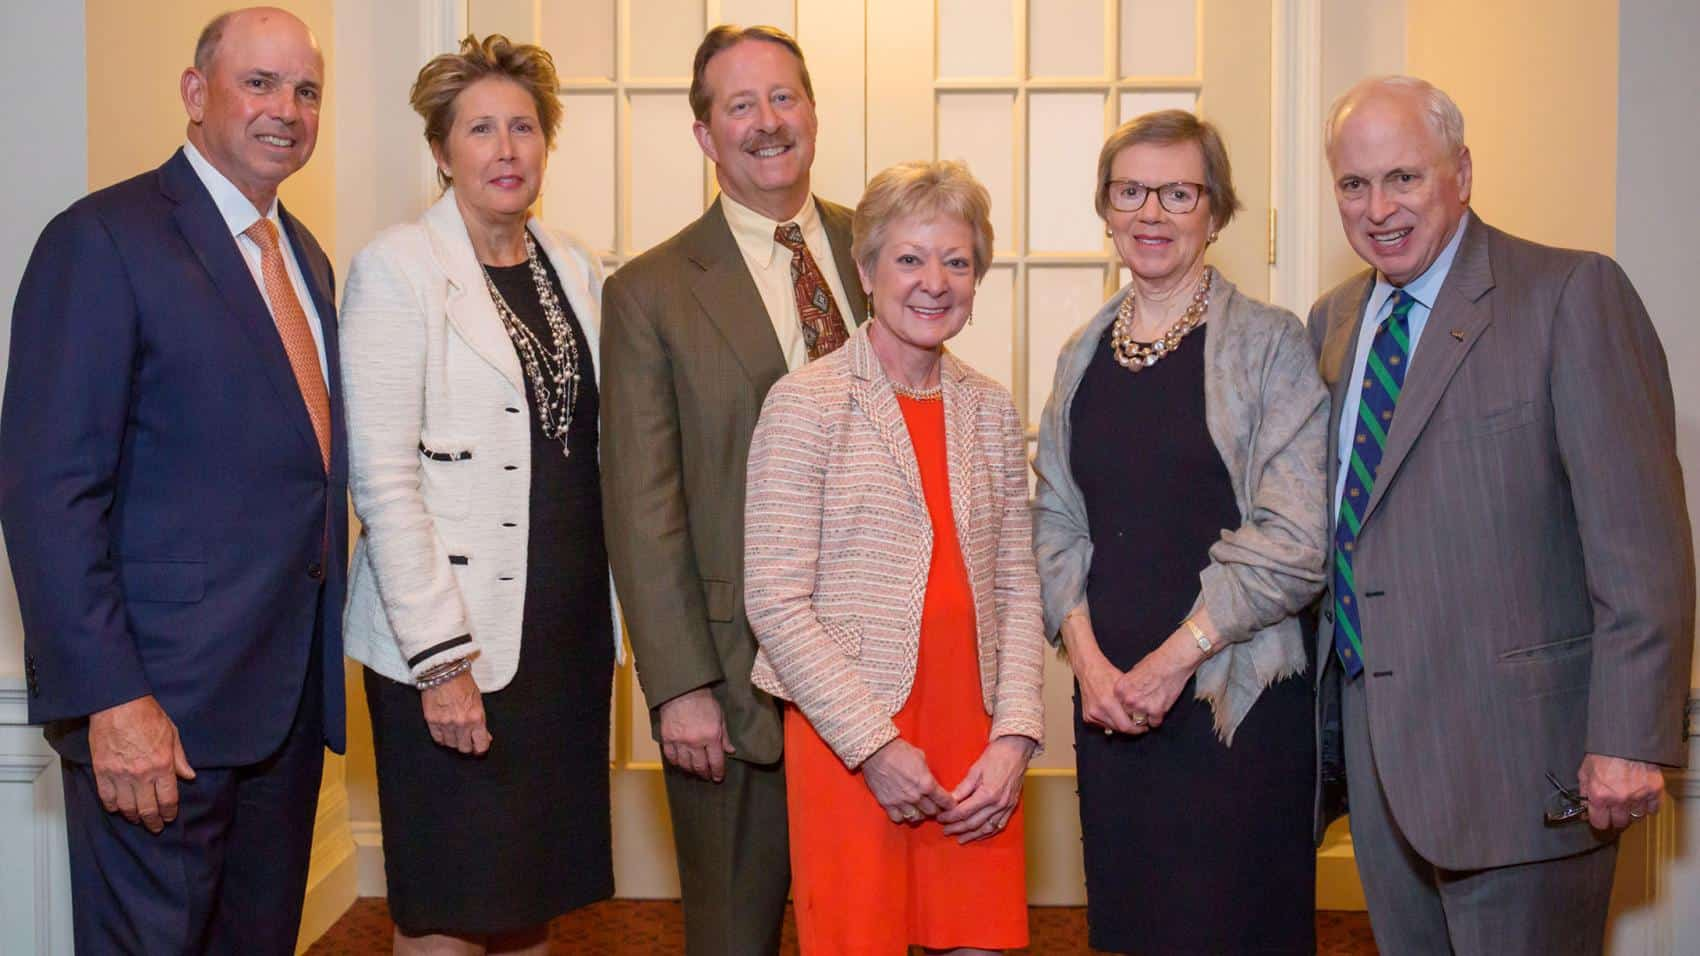 From left are John and Becky Surma, Curt and Kim Fleming, and Catharine and John T. Ryan III. Not pictured is Michael Ryan.